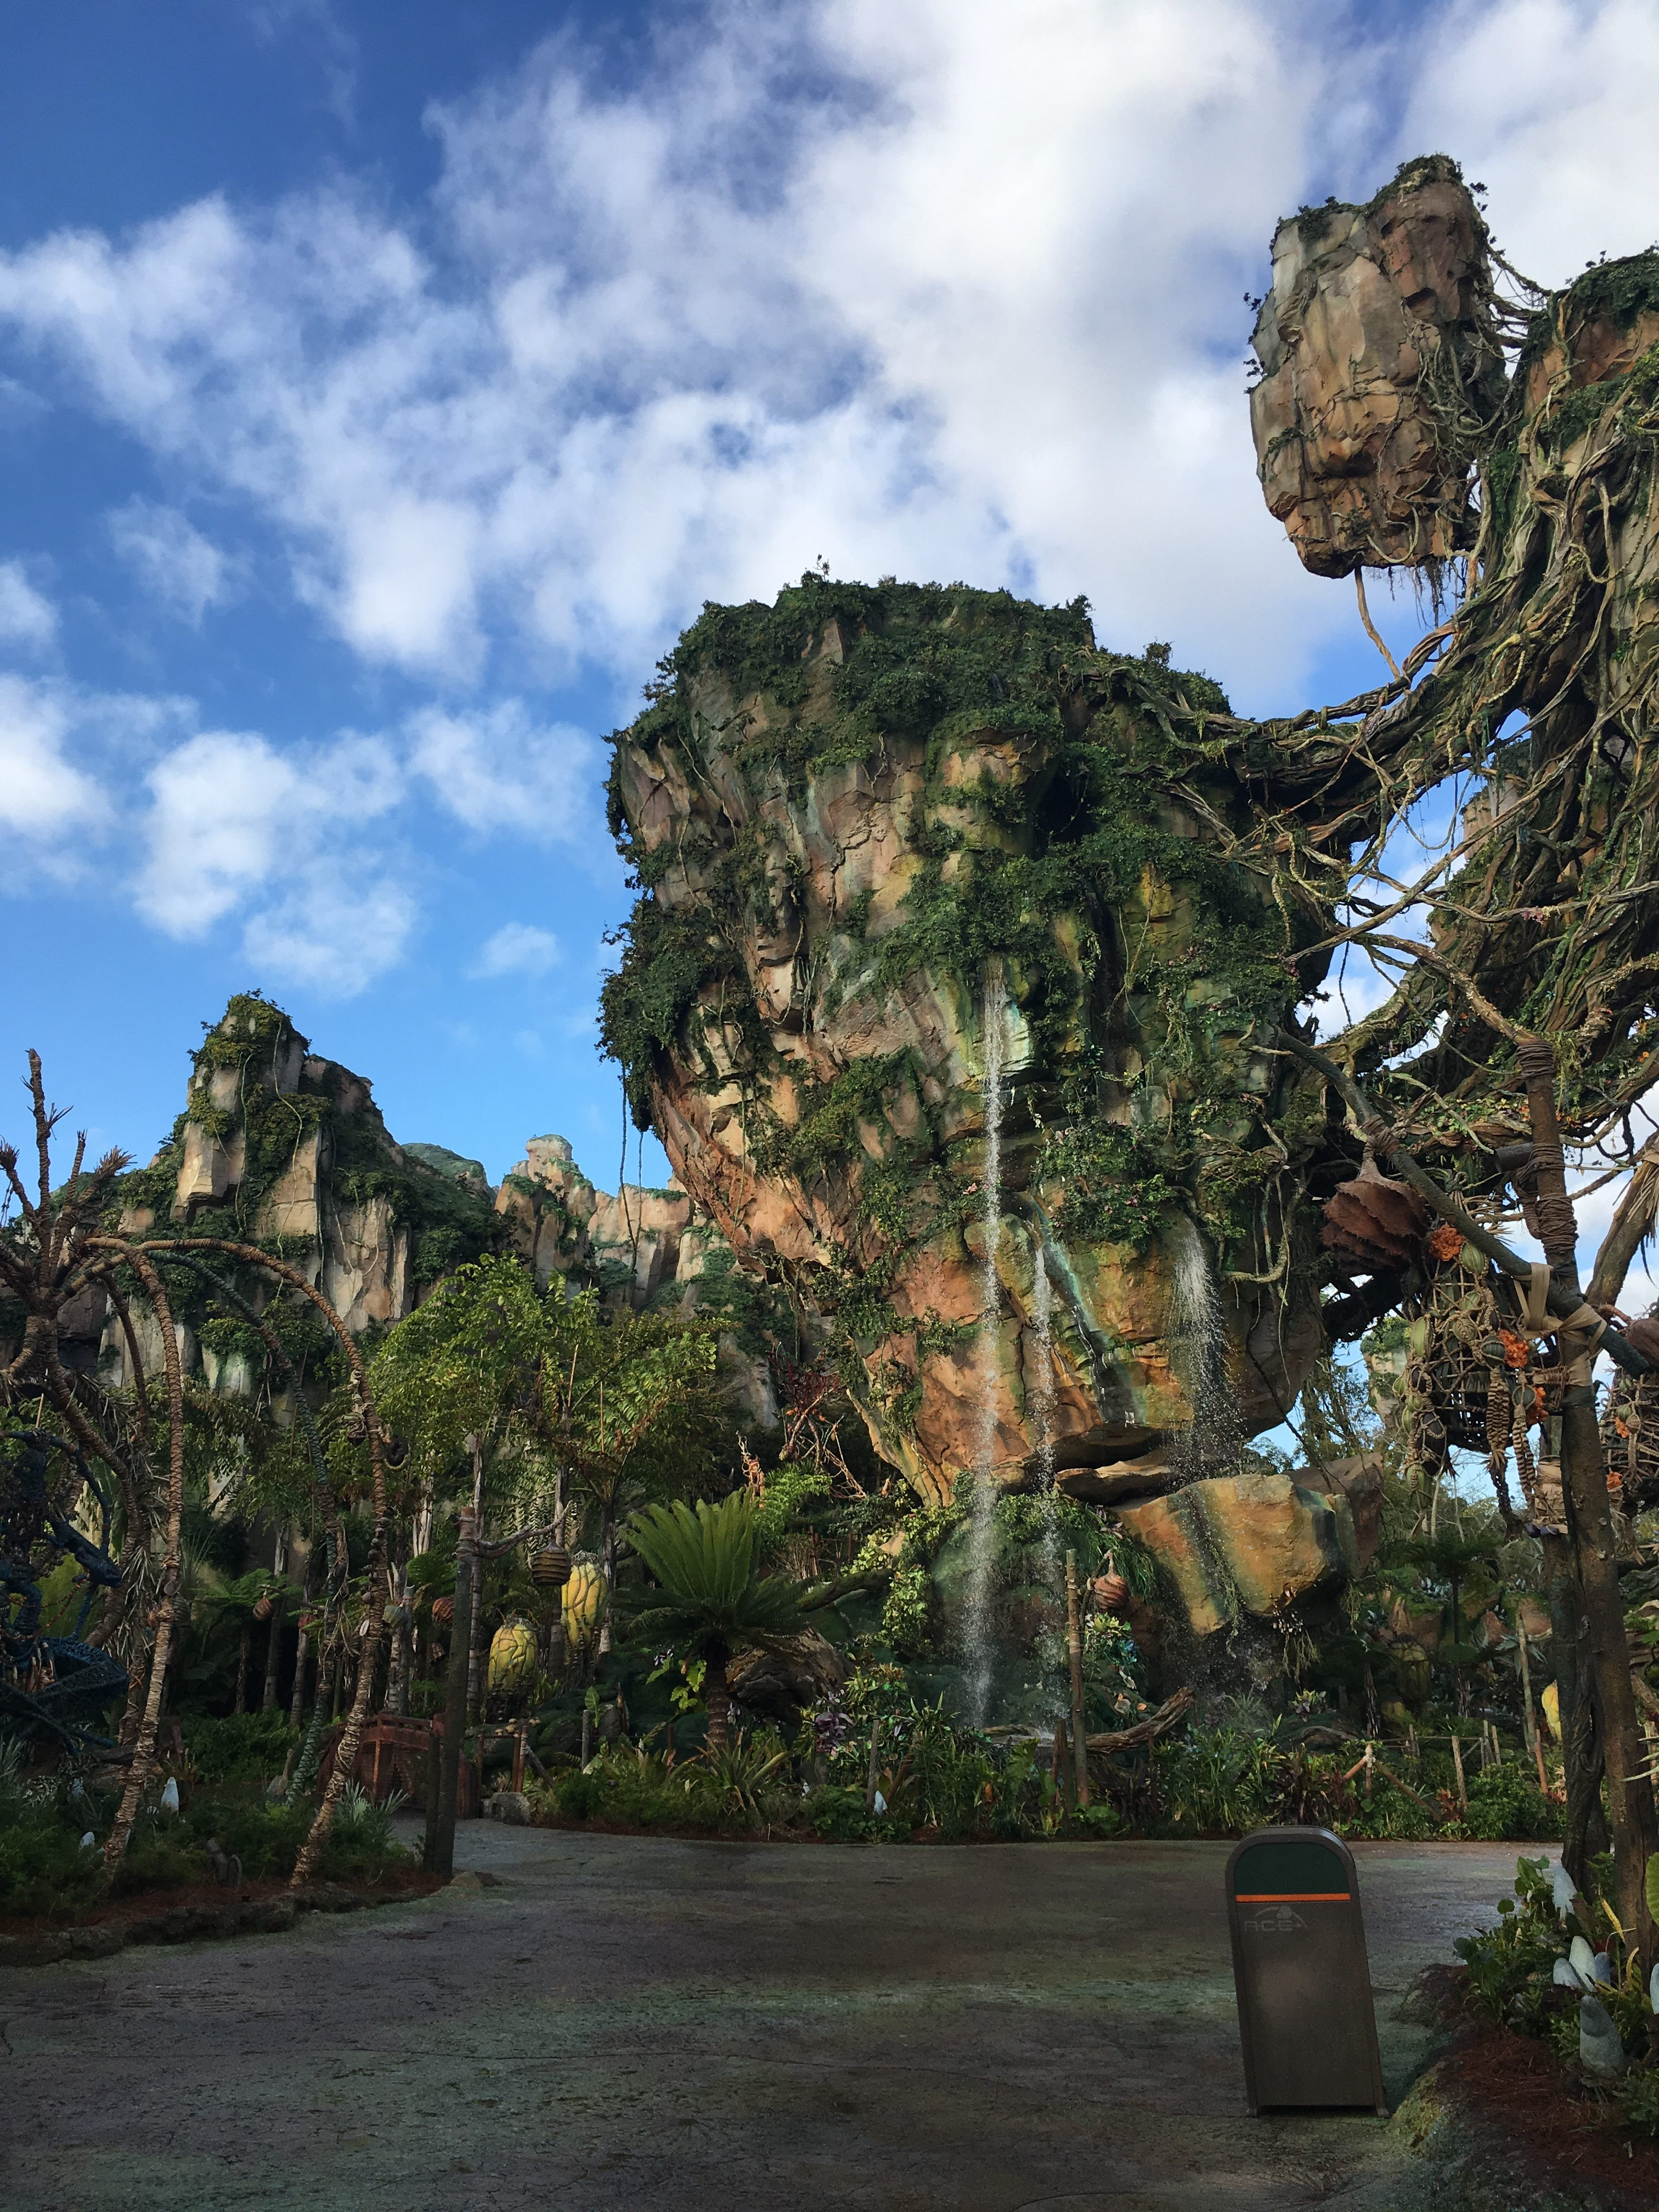 How to eat Paleo at Disney - Tips for your next Disney World vacation!